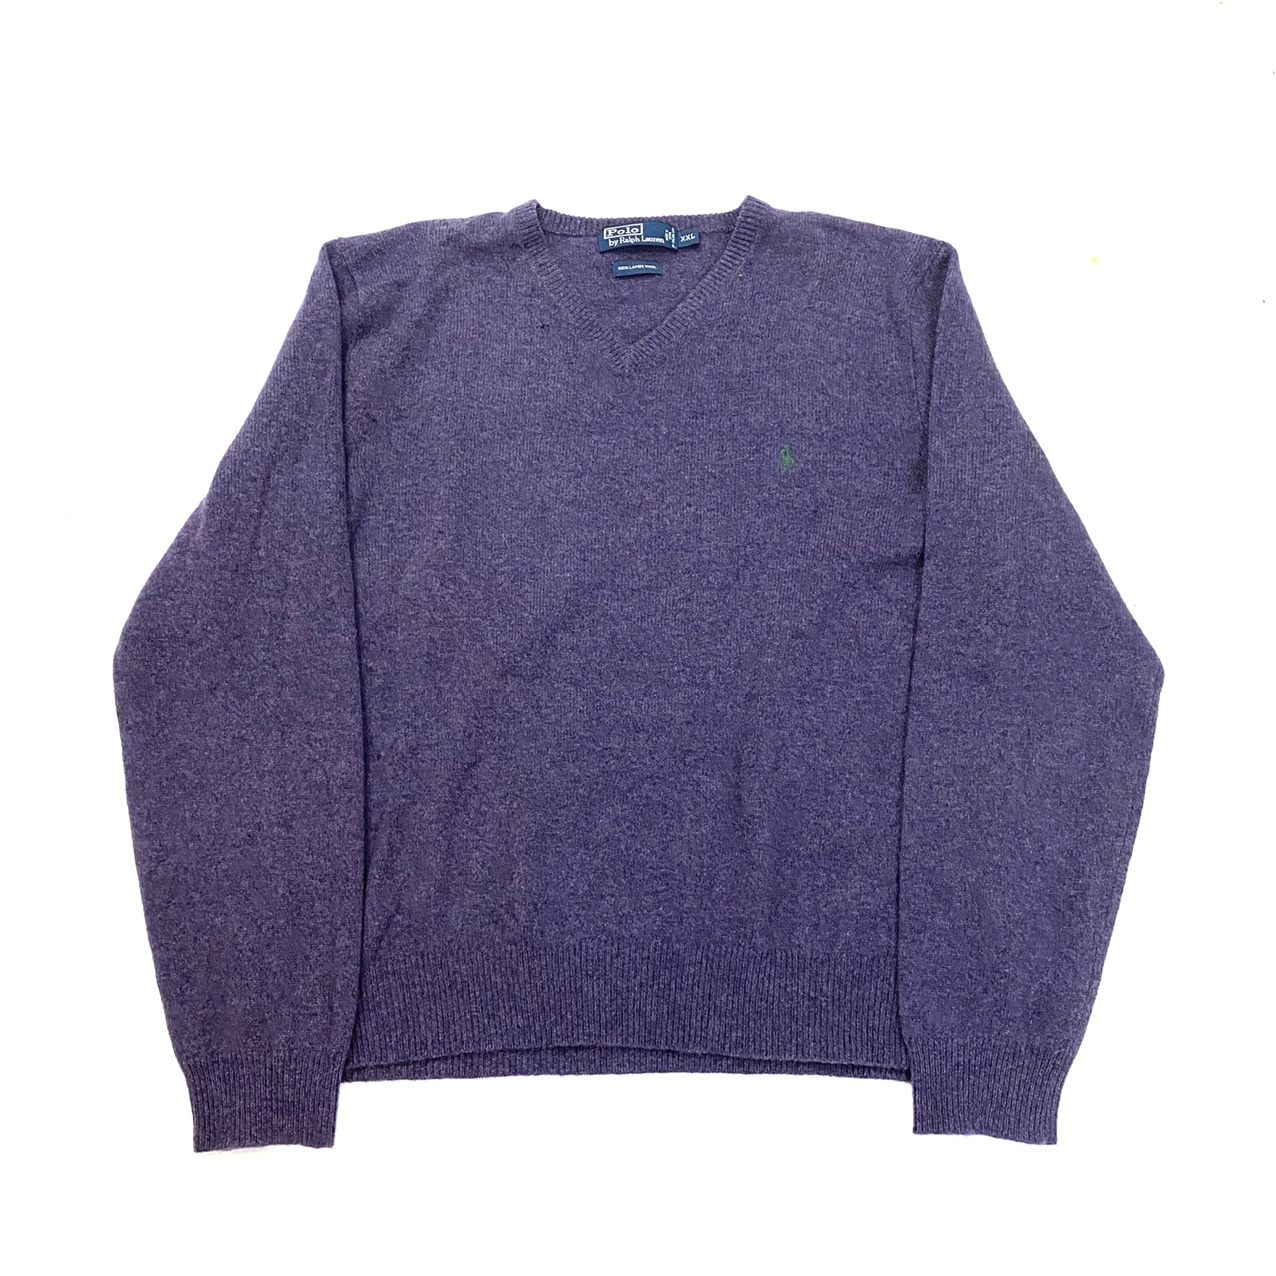 Product Image 1 - Y2K POLO WOOL KNIT SWEATER